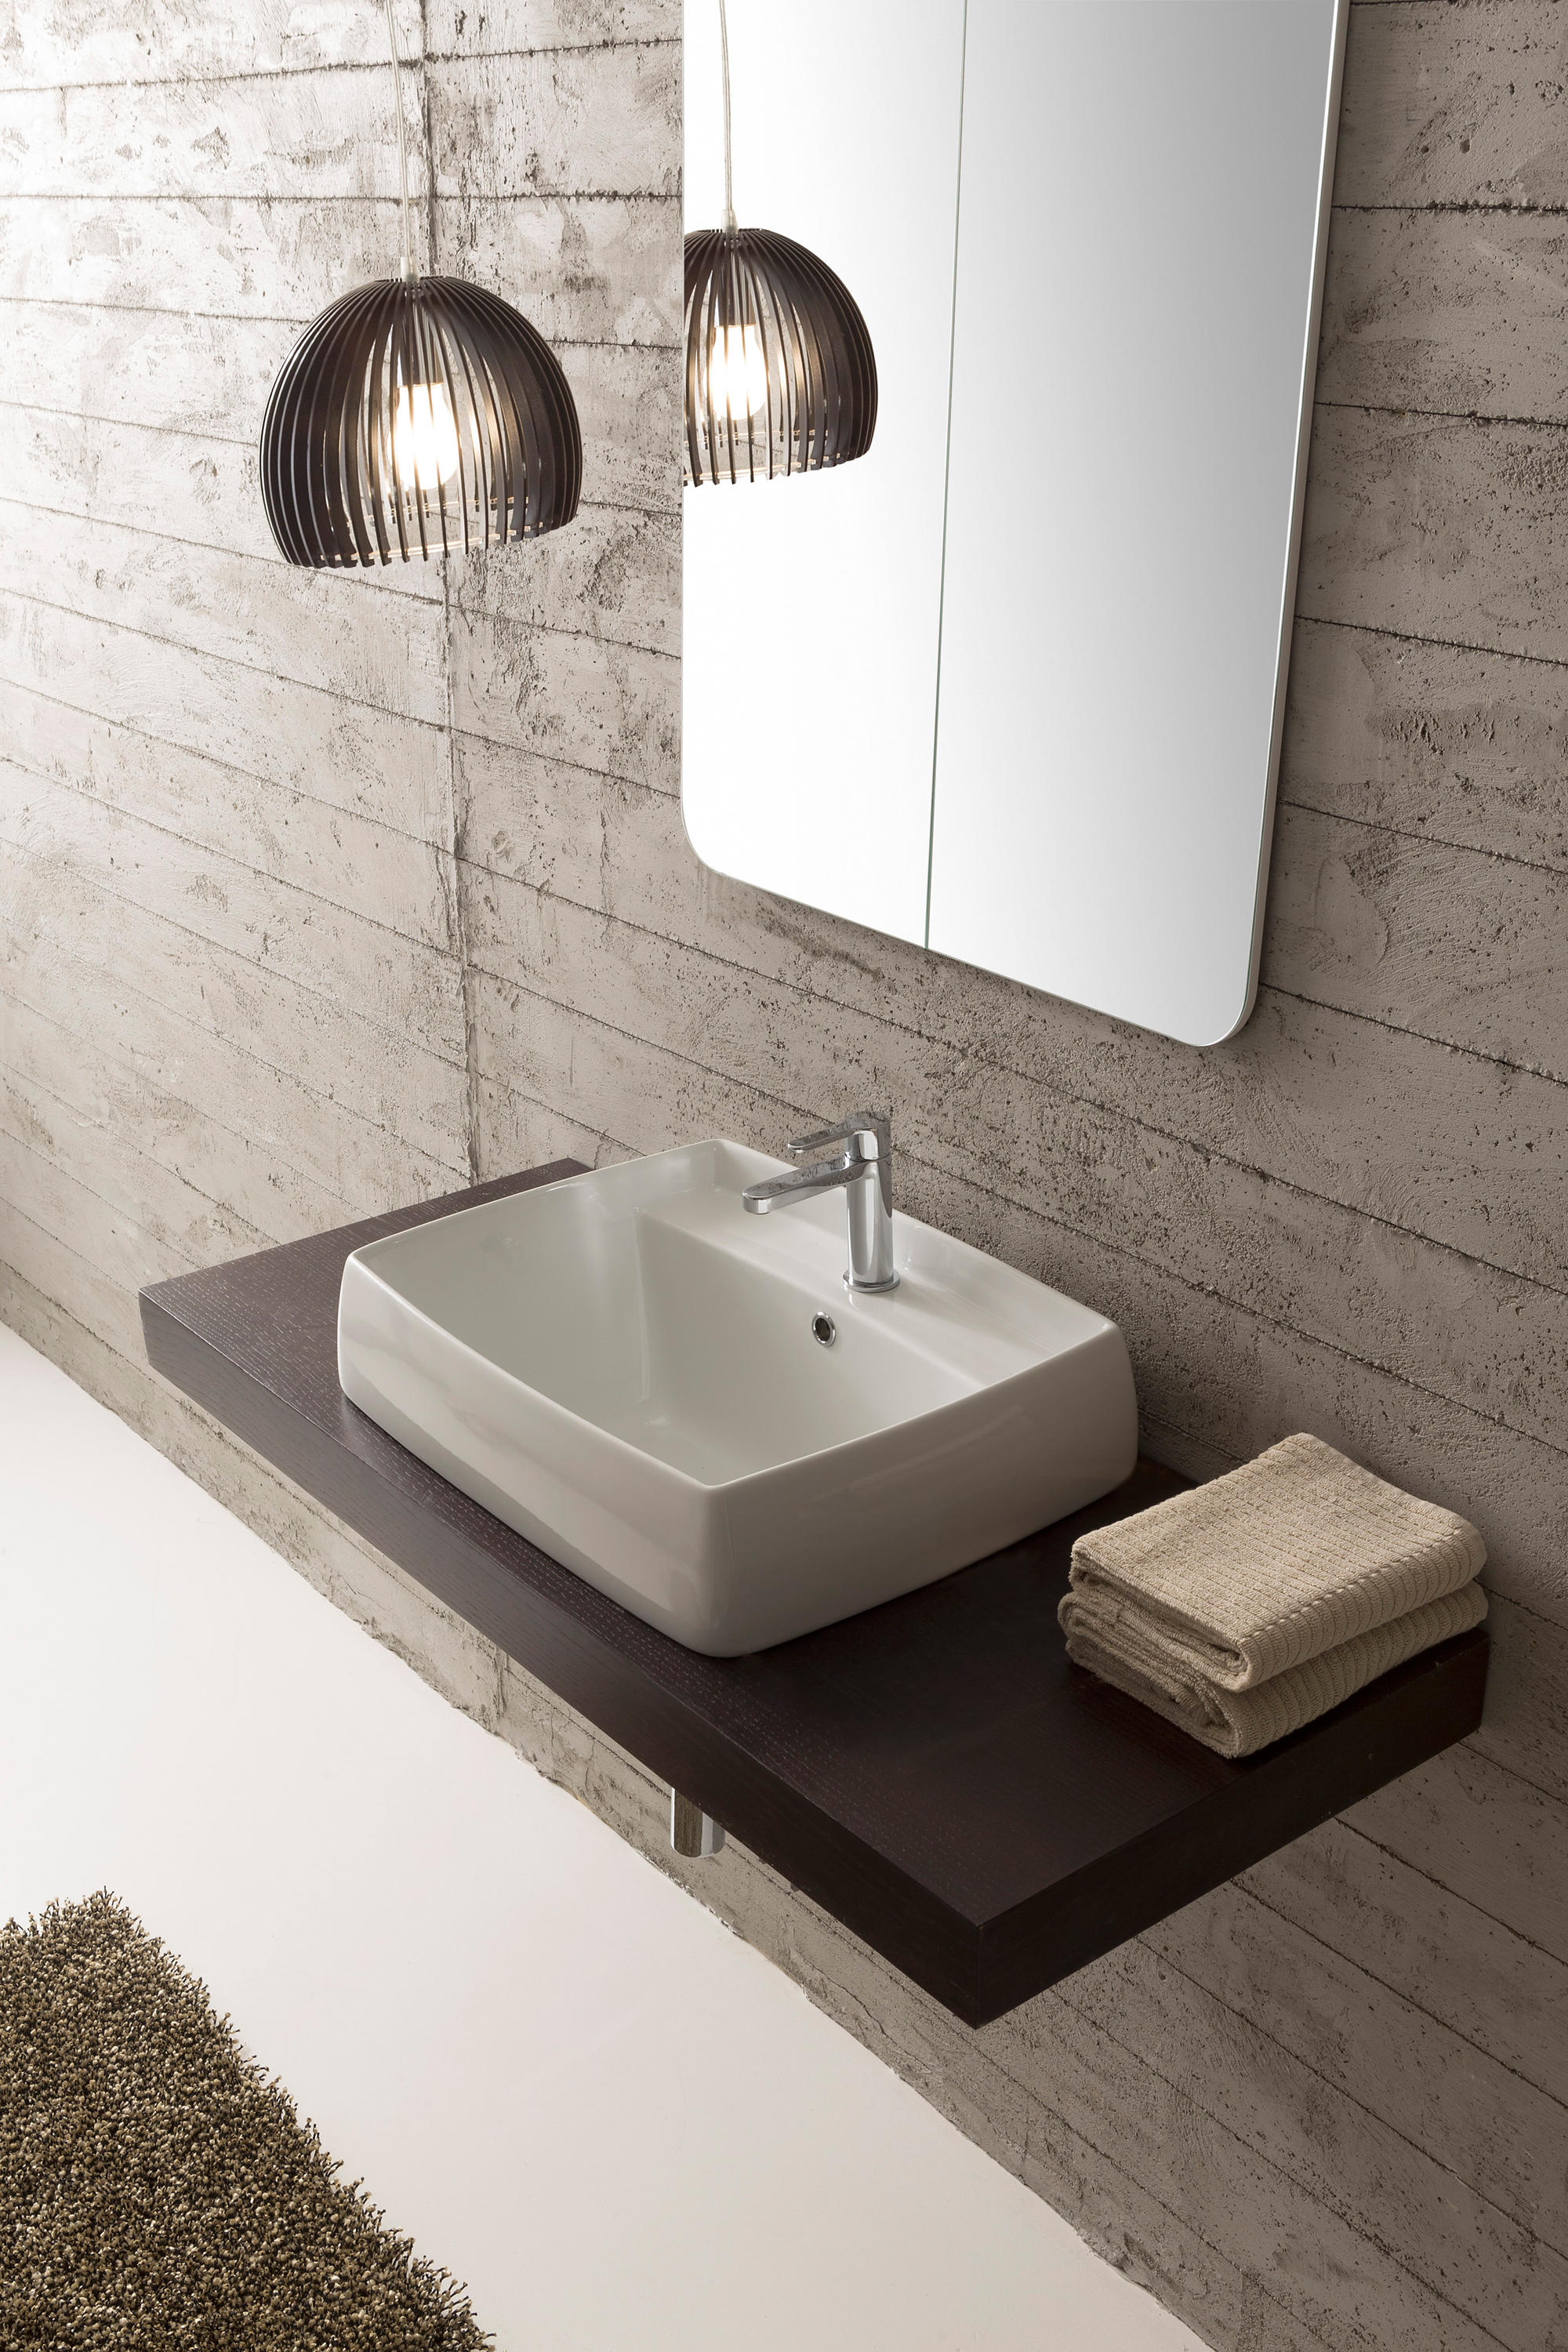 ARCO Wash Basins From Scarabeo Ceramiche Architonic - Scarabeo bathroom sinks